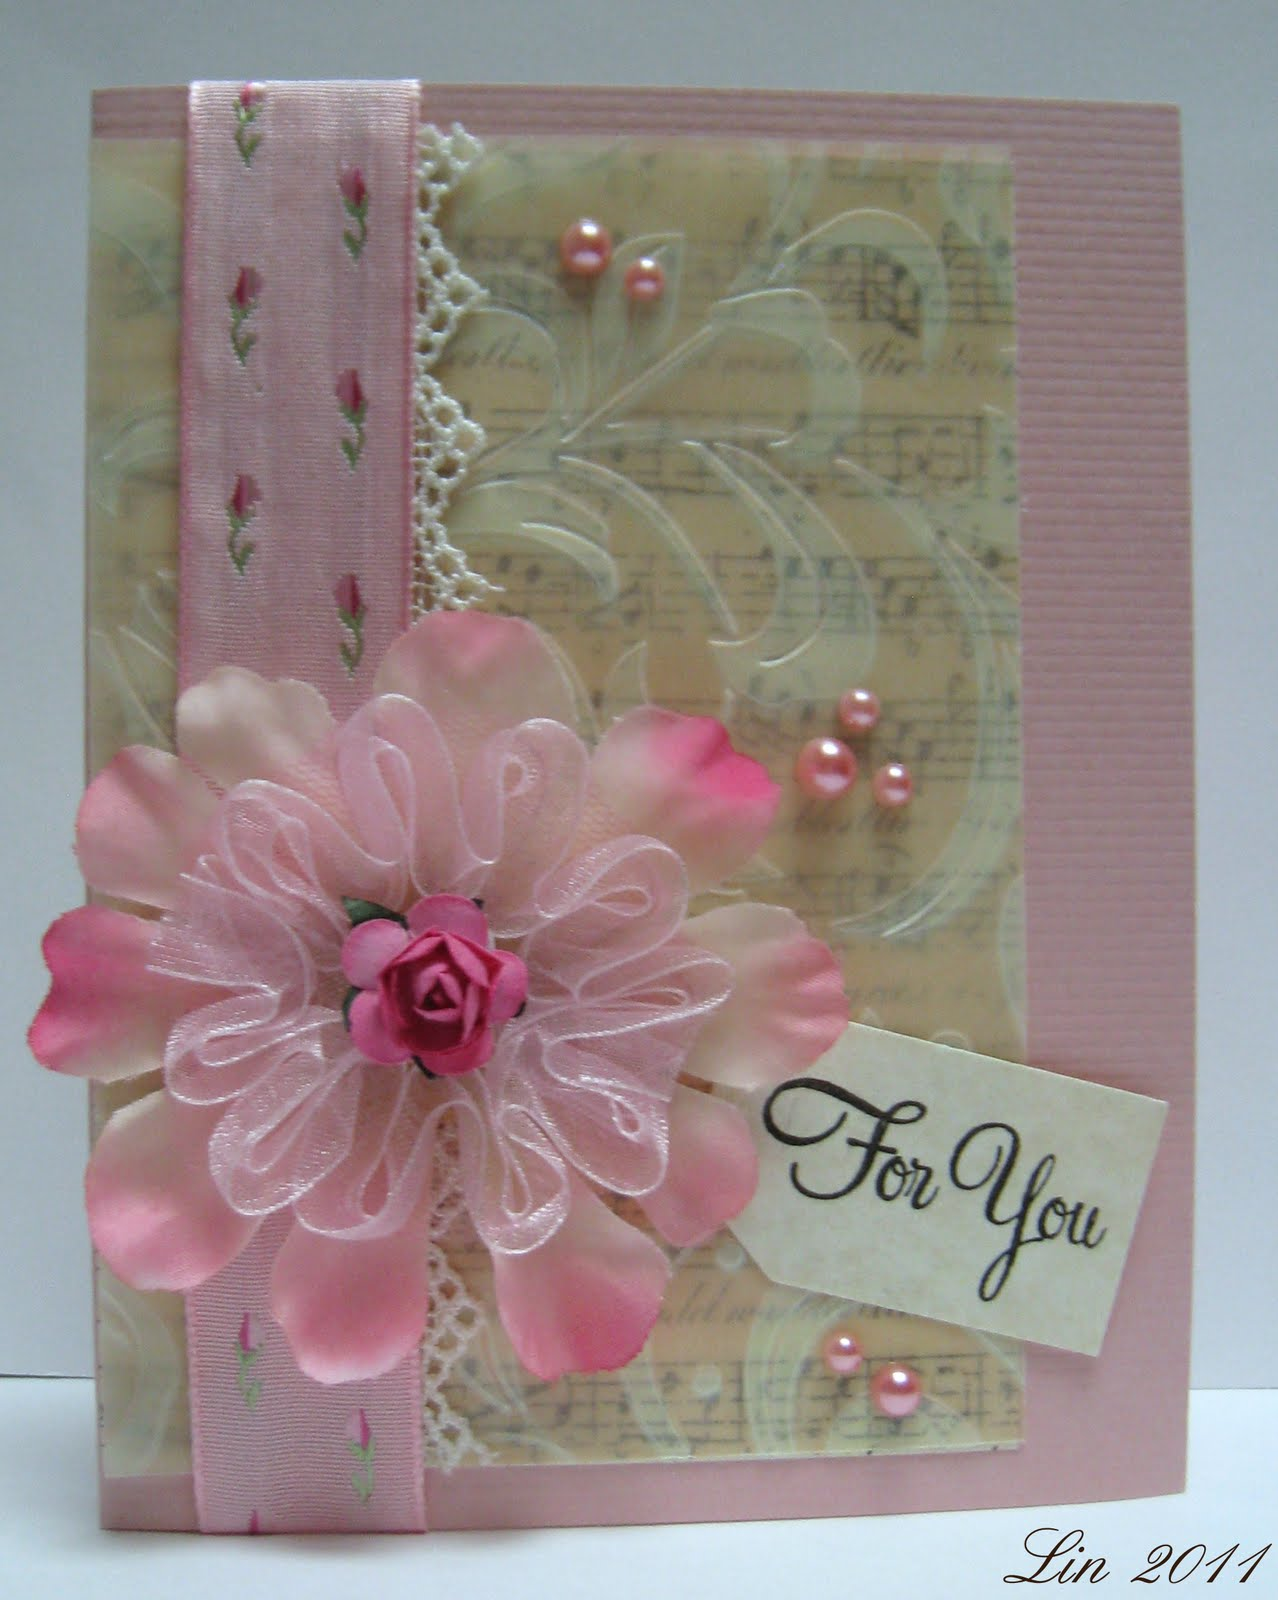 Cream colored cardstock paper studio - I M Also Entering This Card Into The Ribbon Reel Shabby Strawberries And Cream Challenge Supplies Pink And Parchment Cardstock Paper Studio